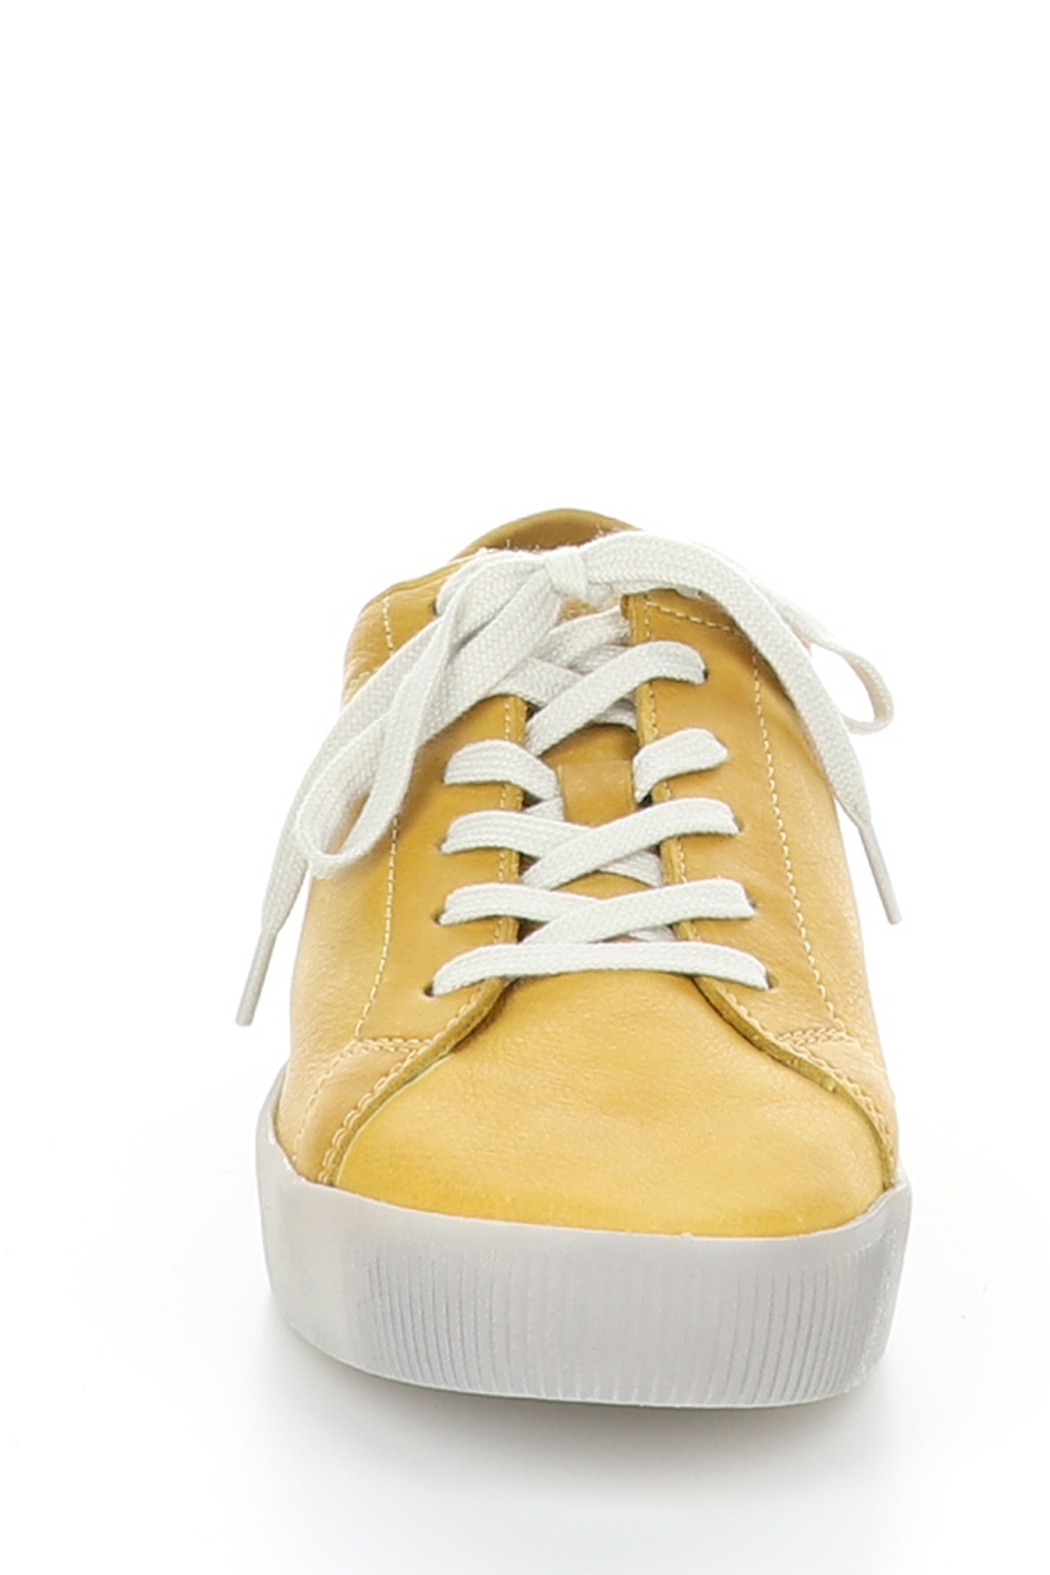 Bos & Co. Sady Leather Sneaker - Side Cropped Image